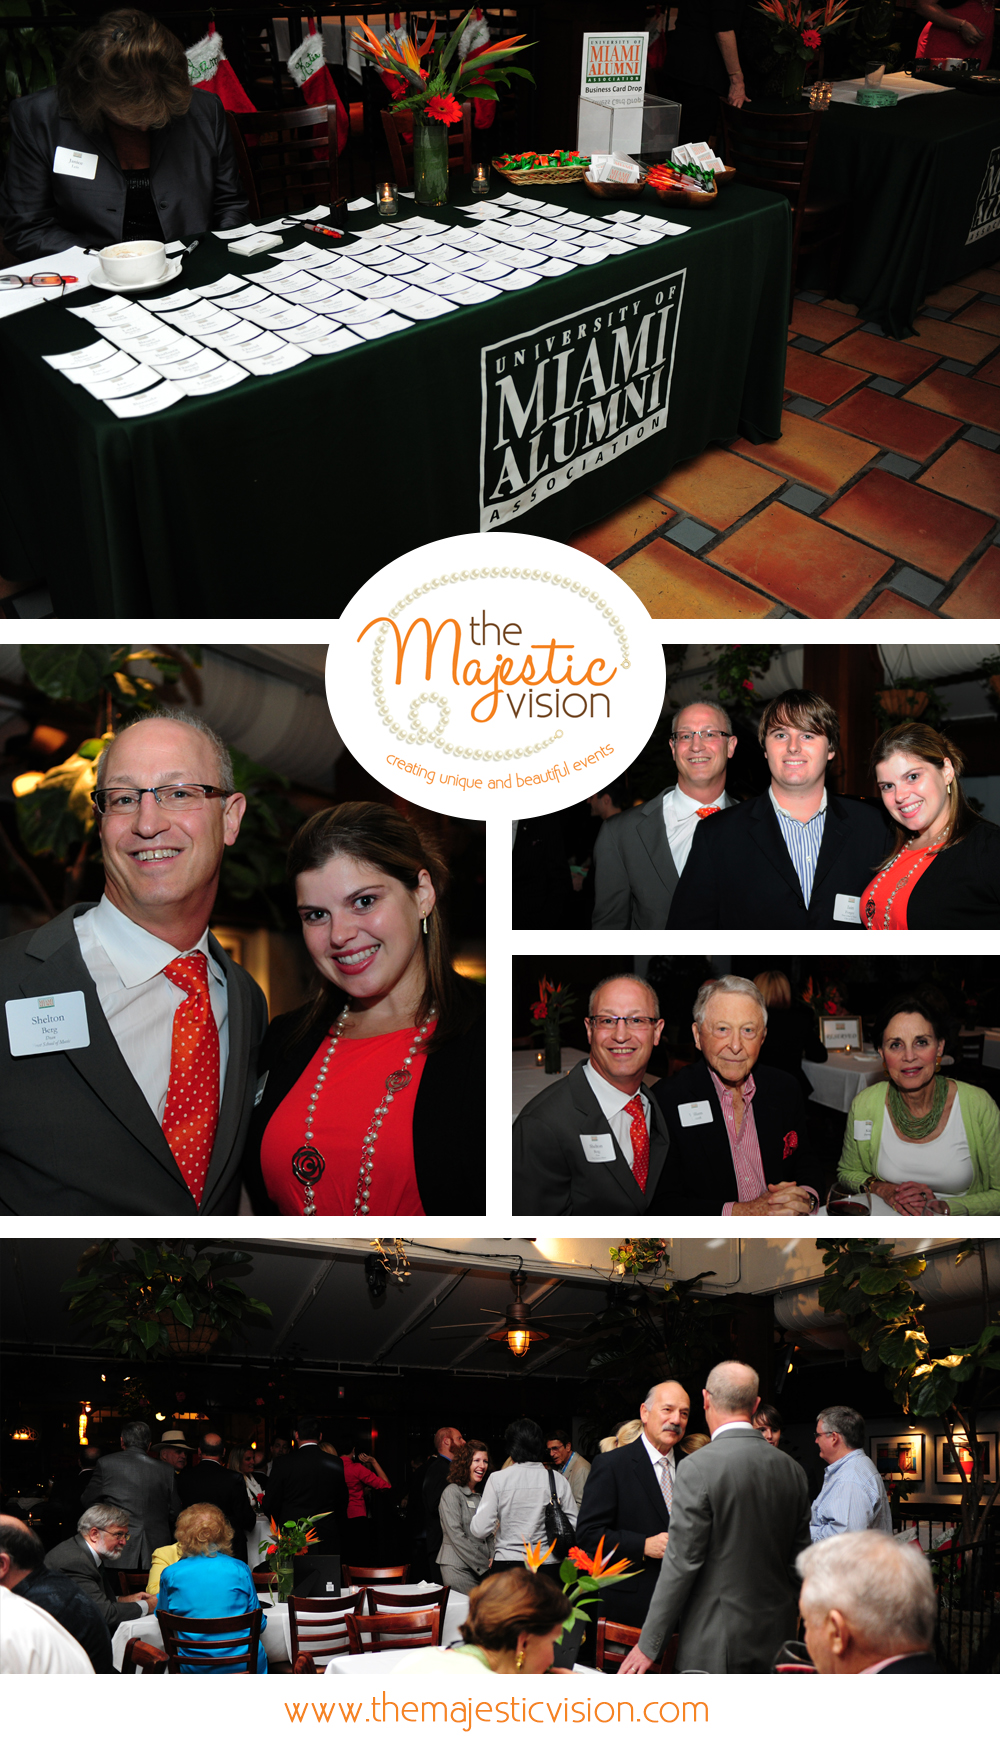 University of Miami Holiday Party with Dean Shelly Berg | The Majestic Vision Wedding Planning | Nick and Johnnie's in Palm Beach, FL | www.themajesticvision.com | Emily Allongo Photography